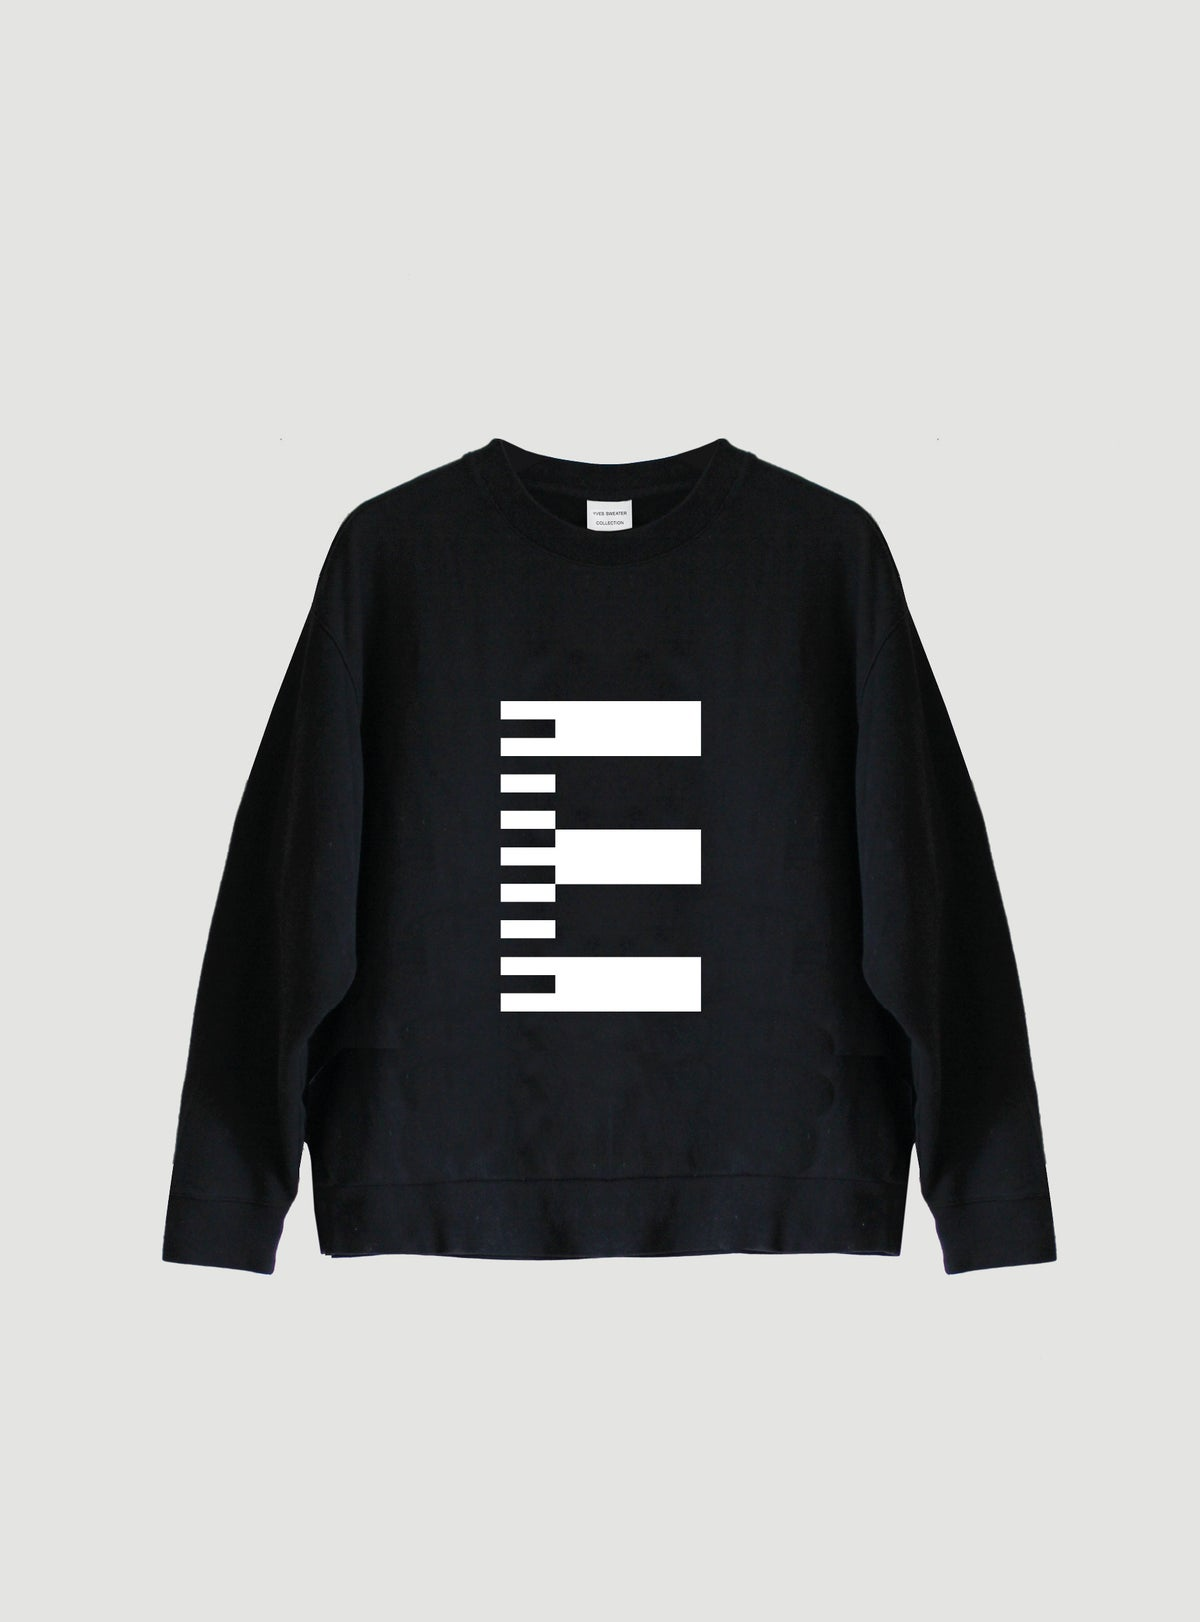 Image of E Sweater